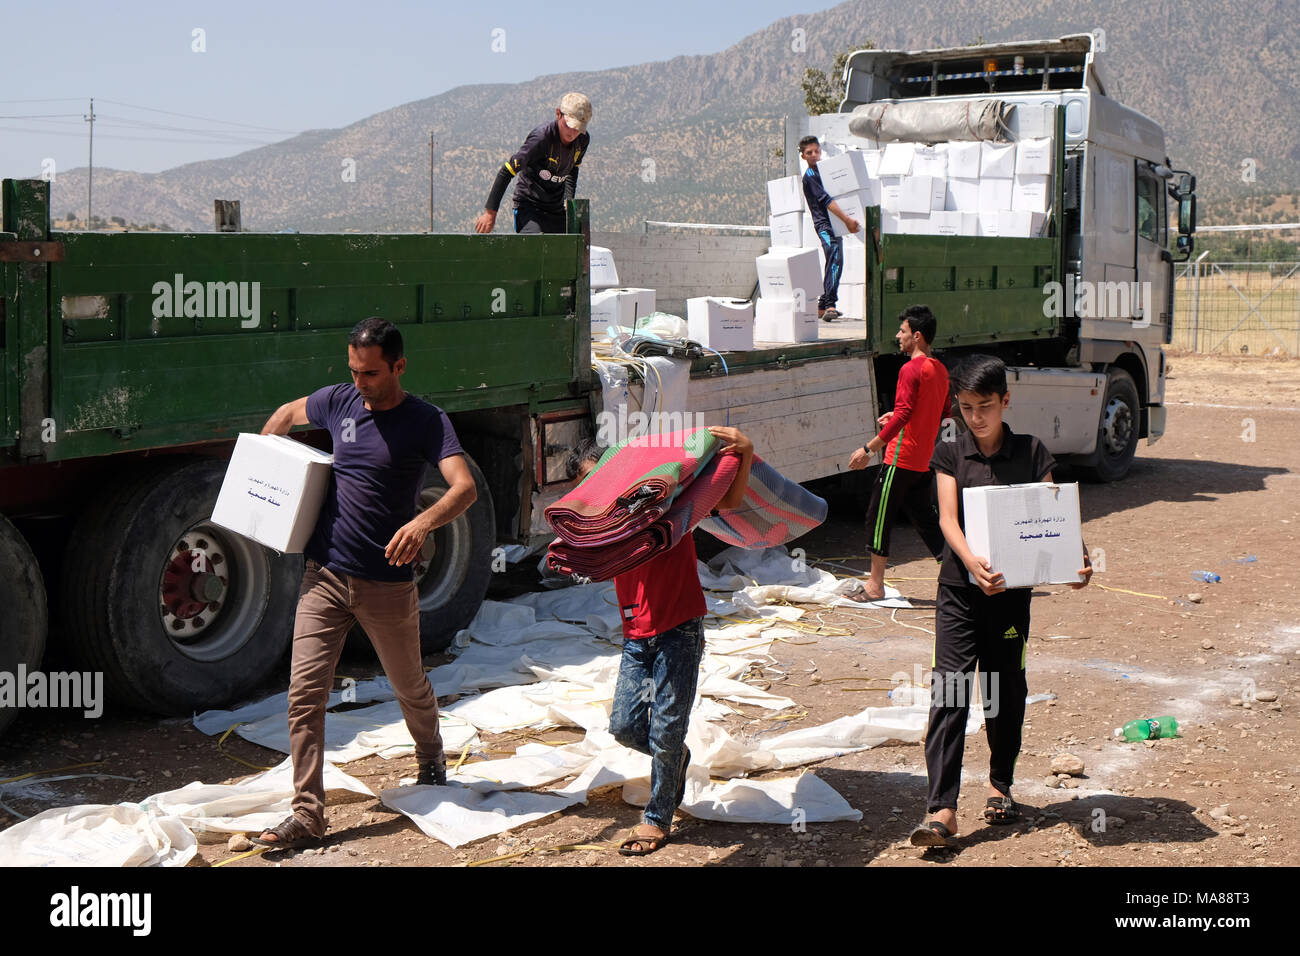 Northern Iraq, Kurdish Autonomous Region: Relief supplies are distributed in the Dawidiya Camp for Yezidi IDPs from the Sinjar Mountains - Stock Image